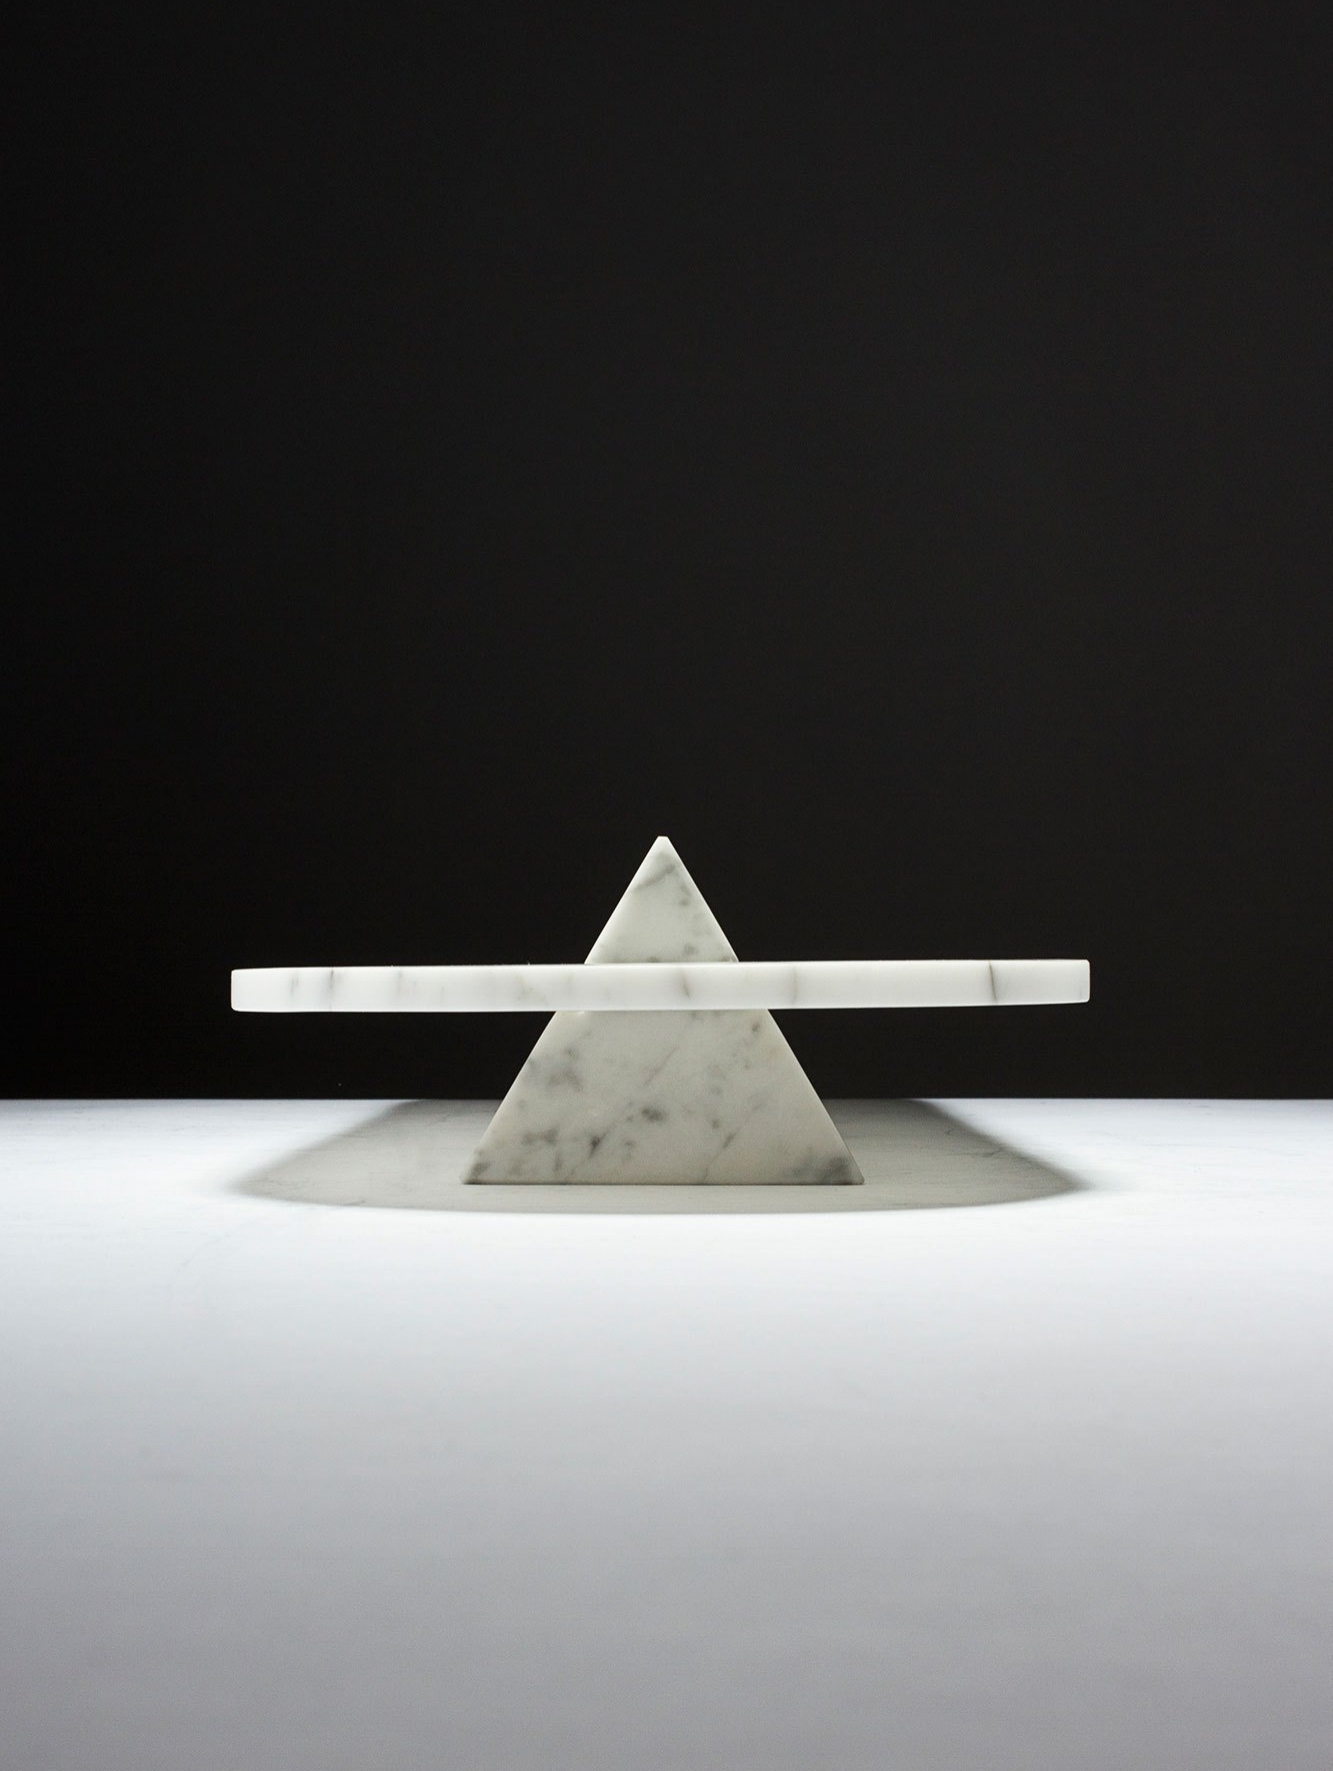 Thevoz Choquet for Bloc Studios -Marmo Domestico Collection N°1 (2015)